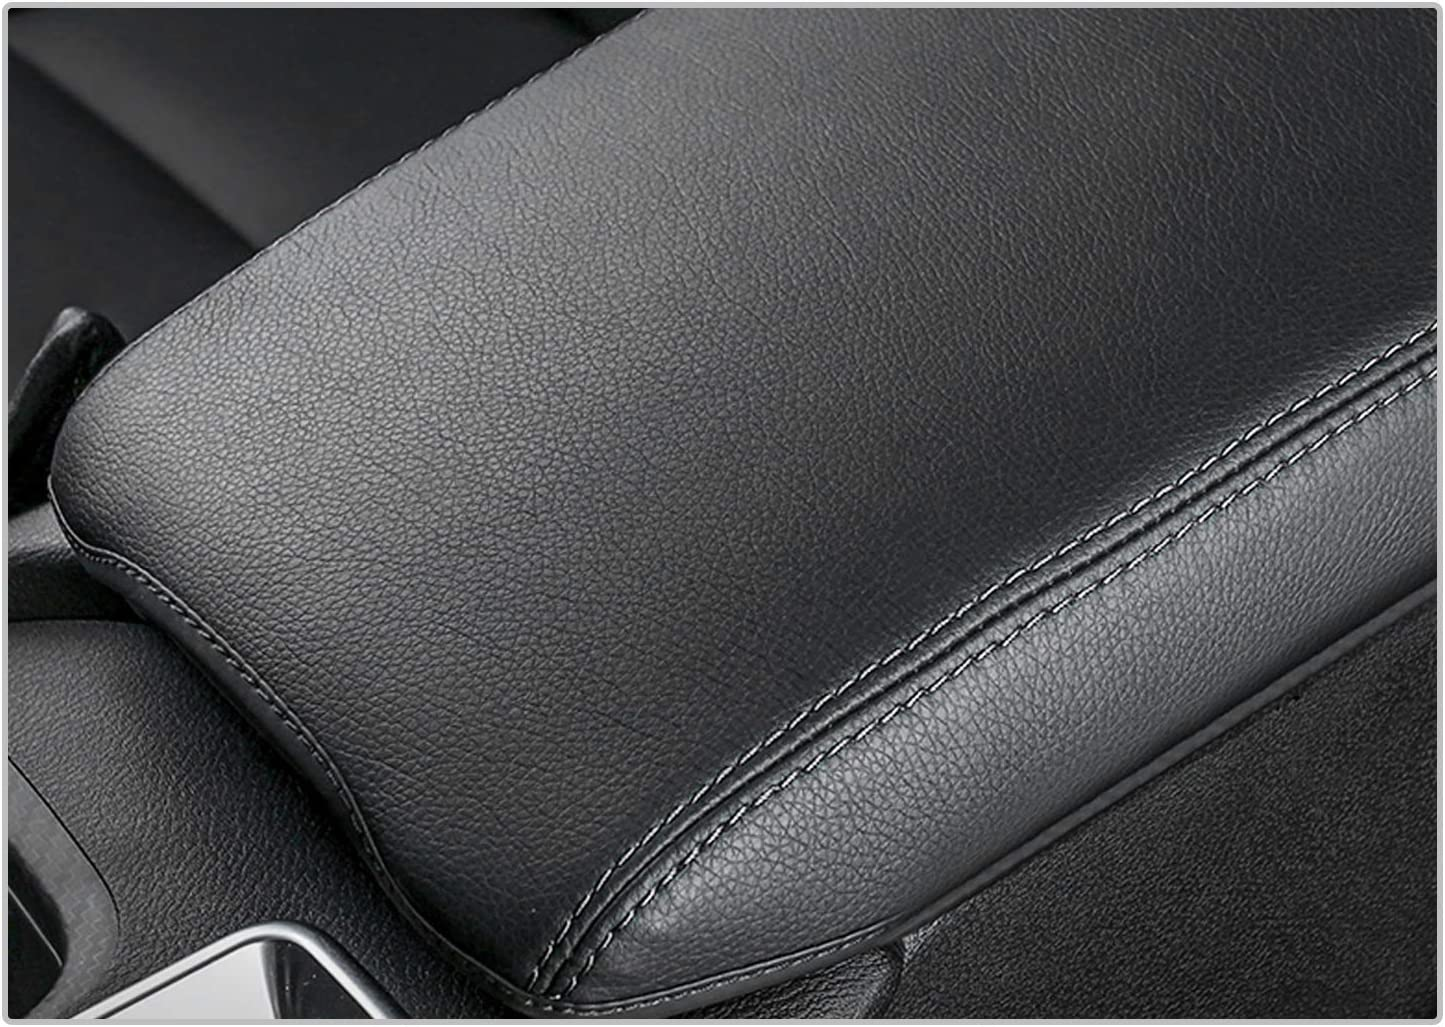 CDEFG Car Center Console Pad for 2020 Sentra Auto Armrest Seat Box Cover Protector Black Leather